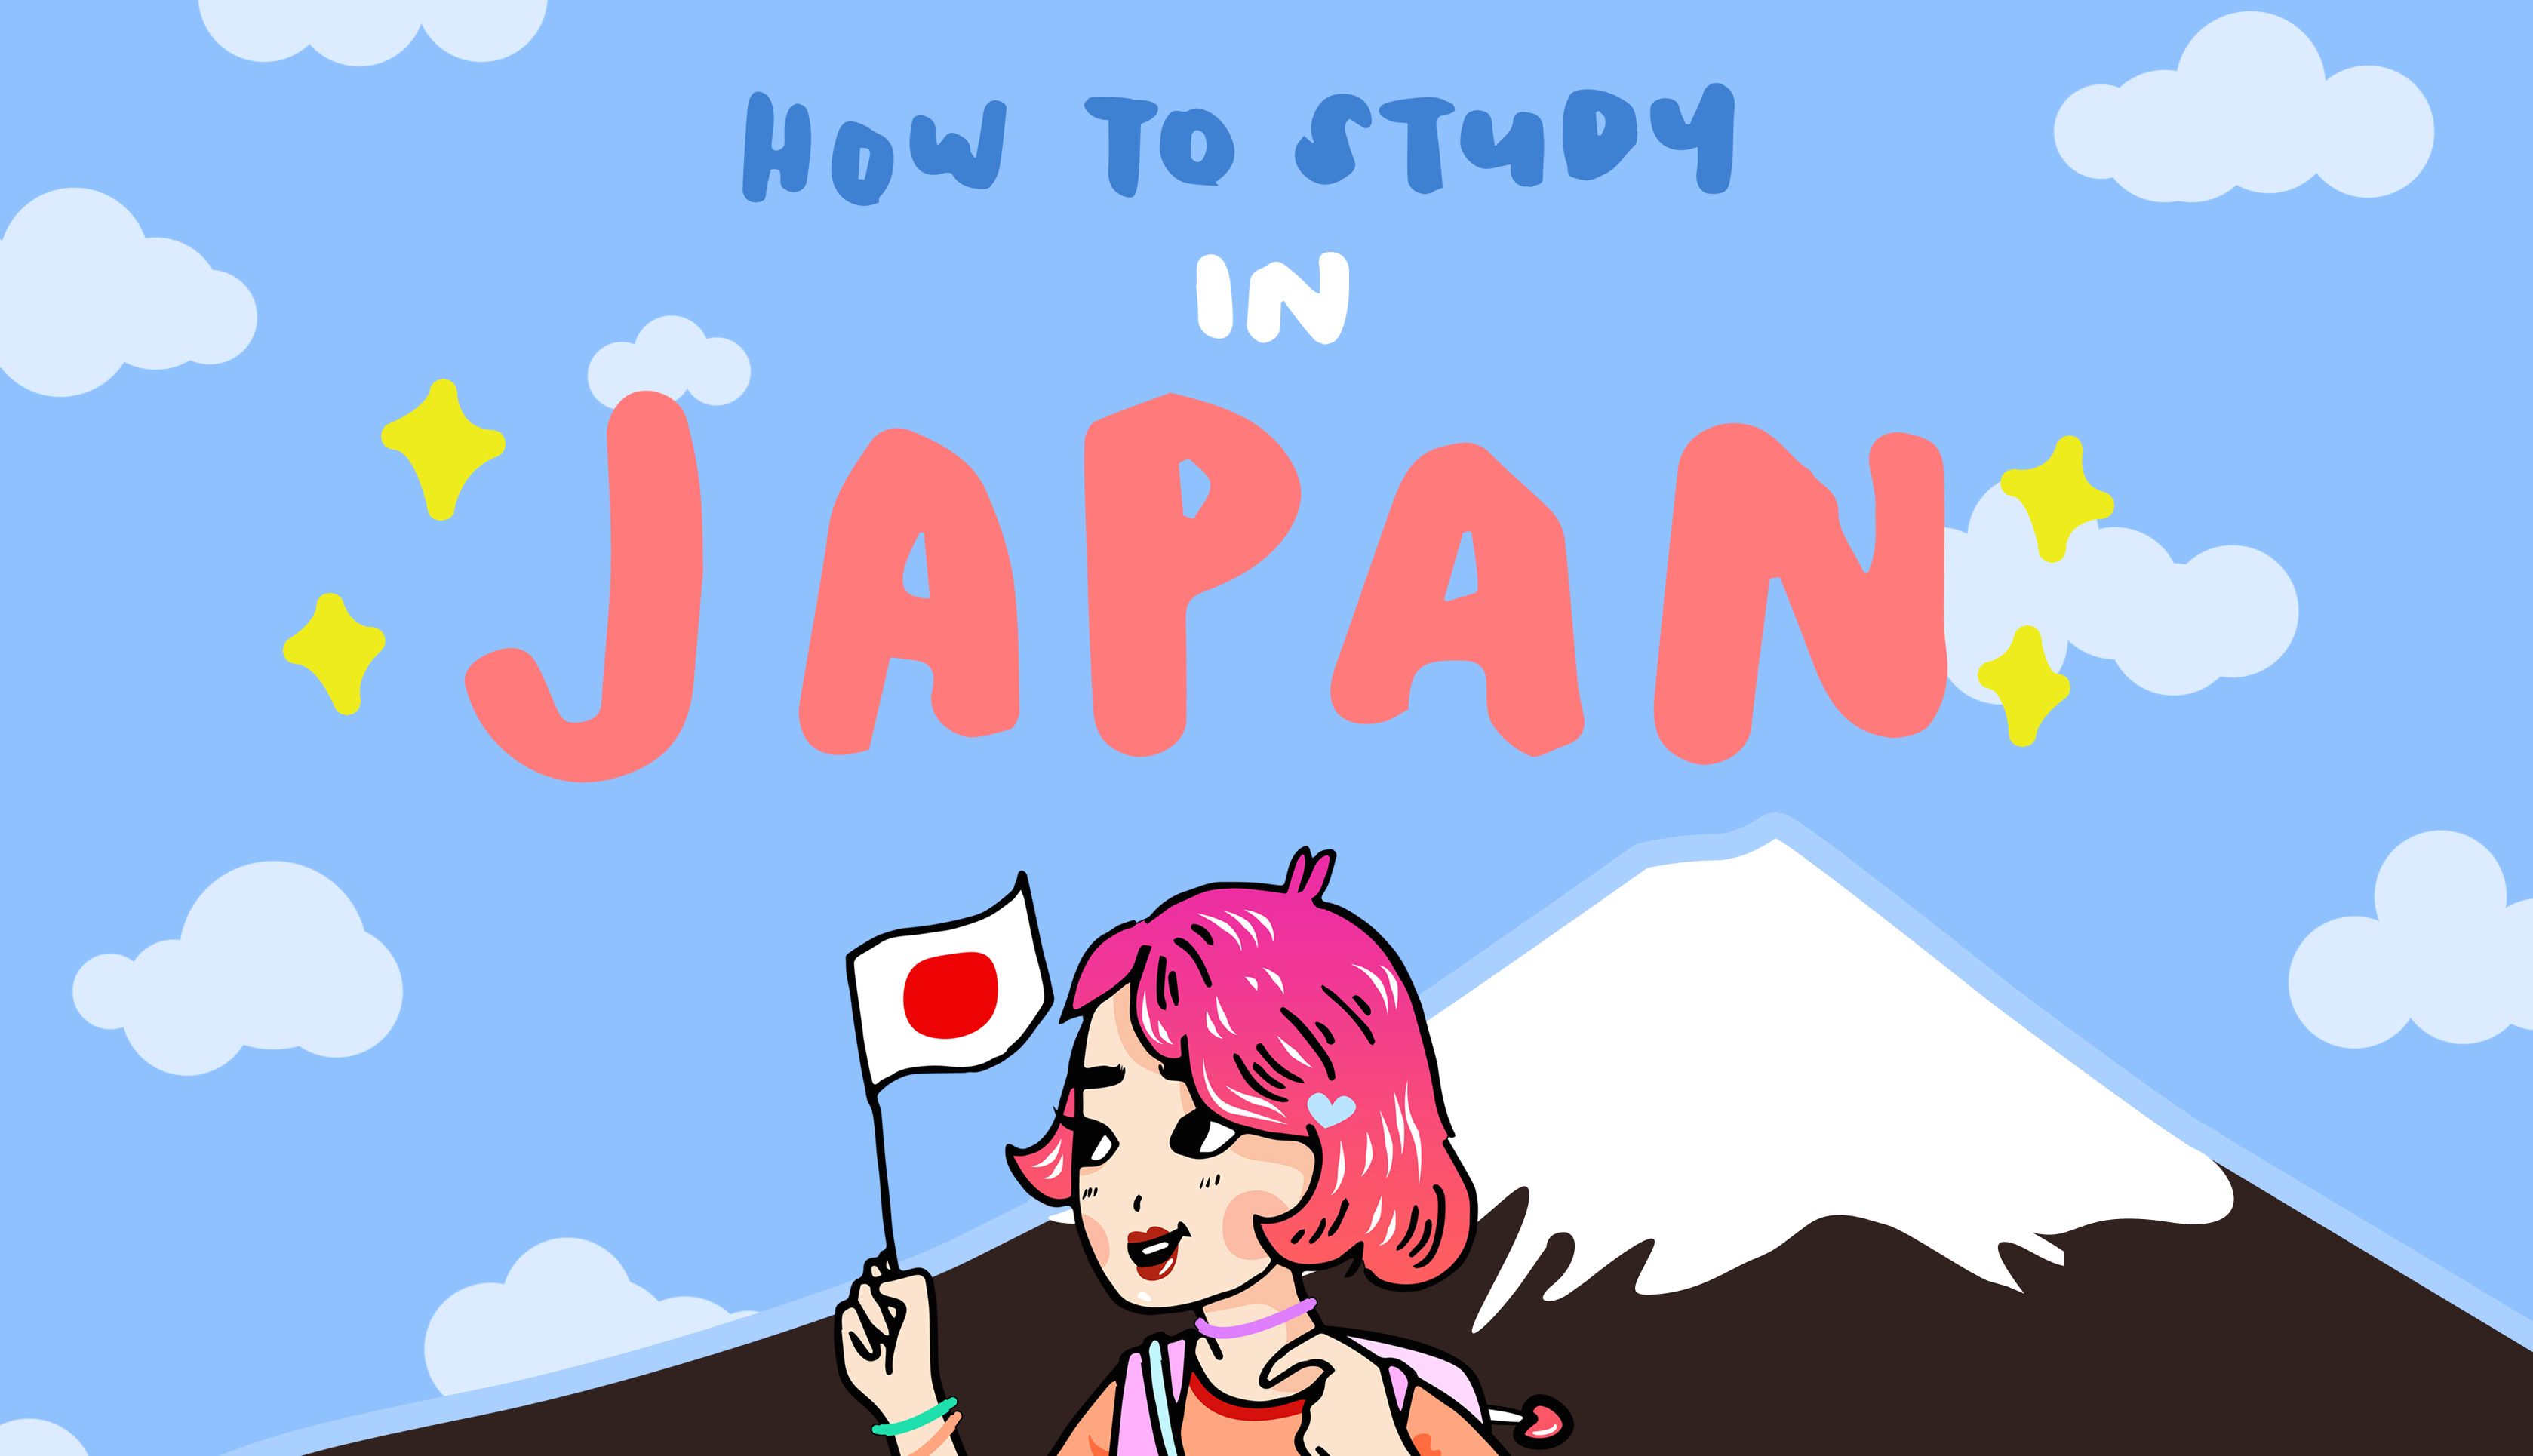 a study on japan Study abroad opportunities in japan where can japan studies take me by studying japanese language, literature, and culture at mcllc and beyond, we aim to help students gain a solid base to advance their explorations of japan, scholarly or otherwise.